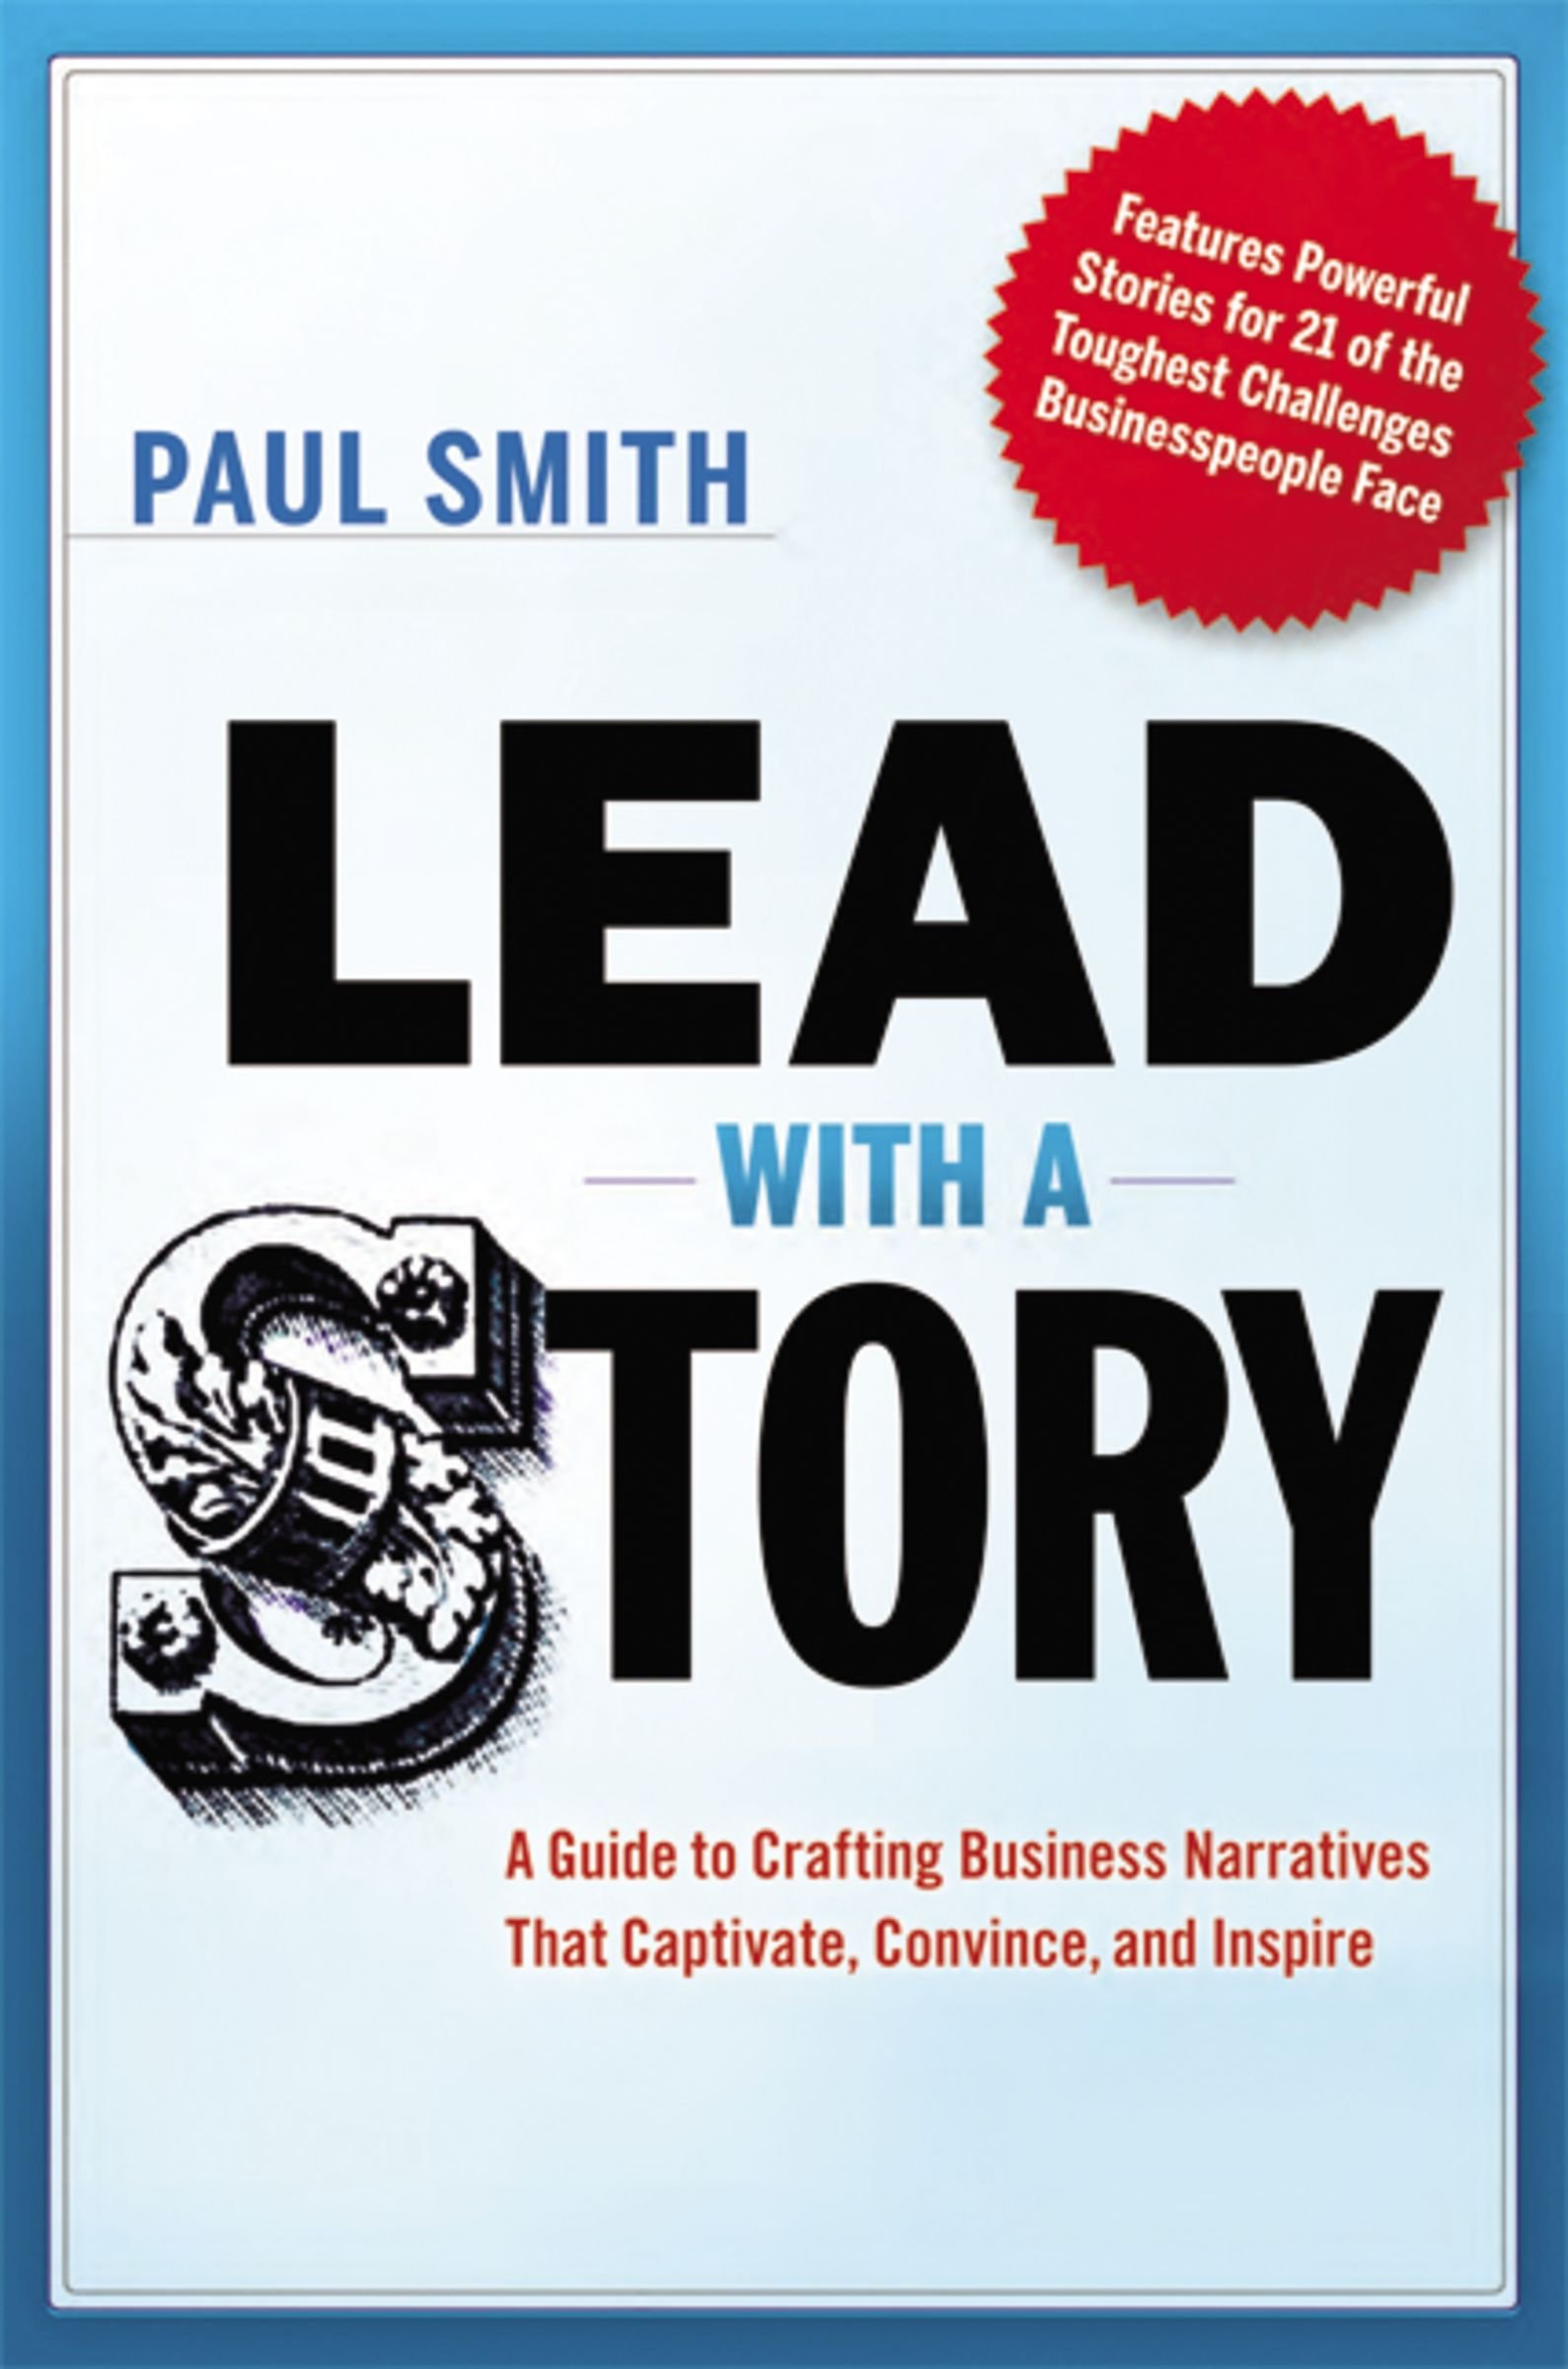 2a222d9f7 Lead with a Story: A Guide to Crafting Business Narratives That ...